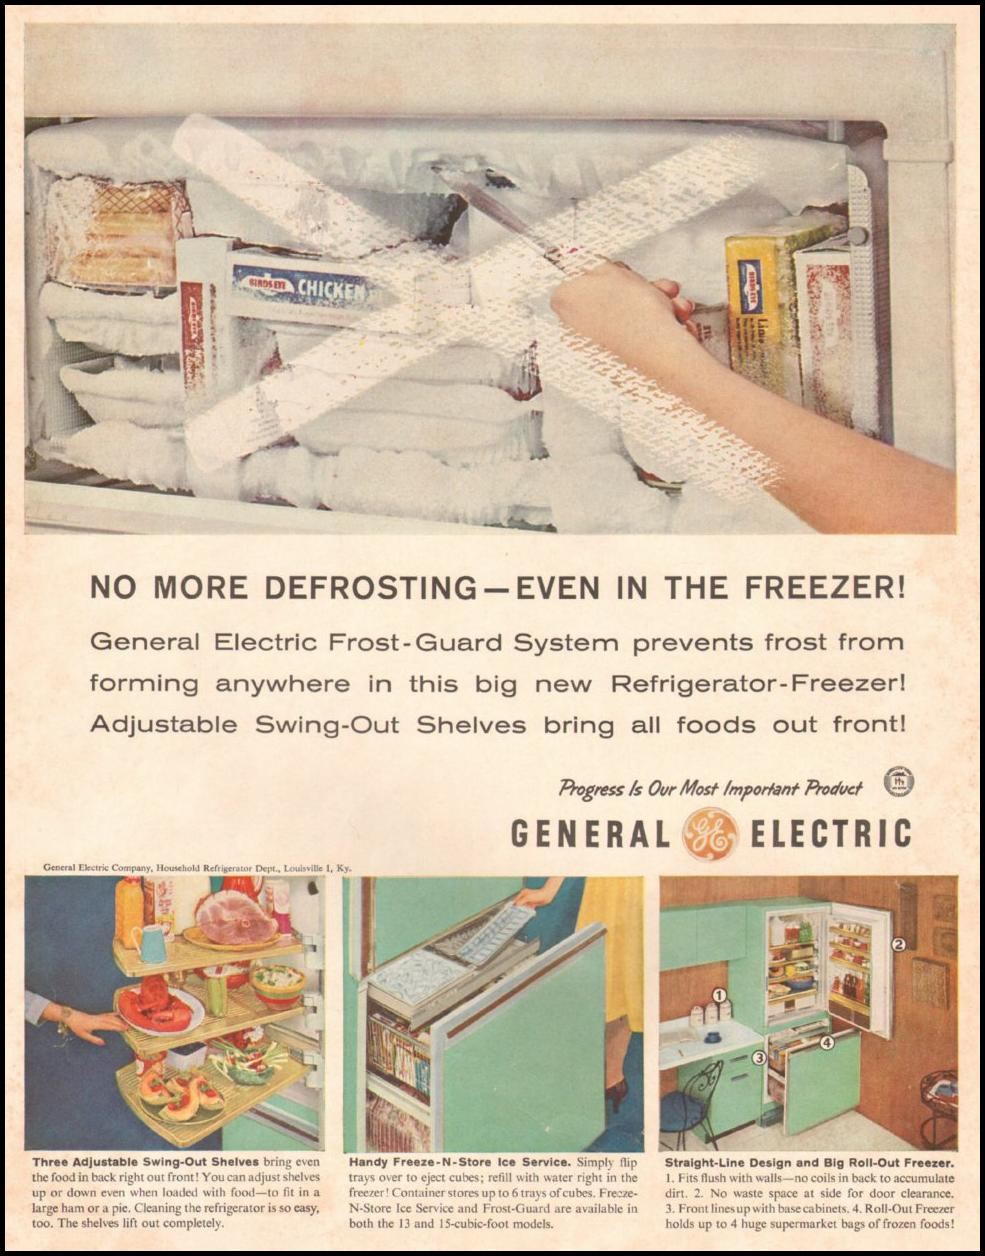 GENERAL ELECTRIC REFRIGERATORS SATURDAY EVENING POST 06/11/1960 INSIDE FRONT